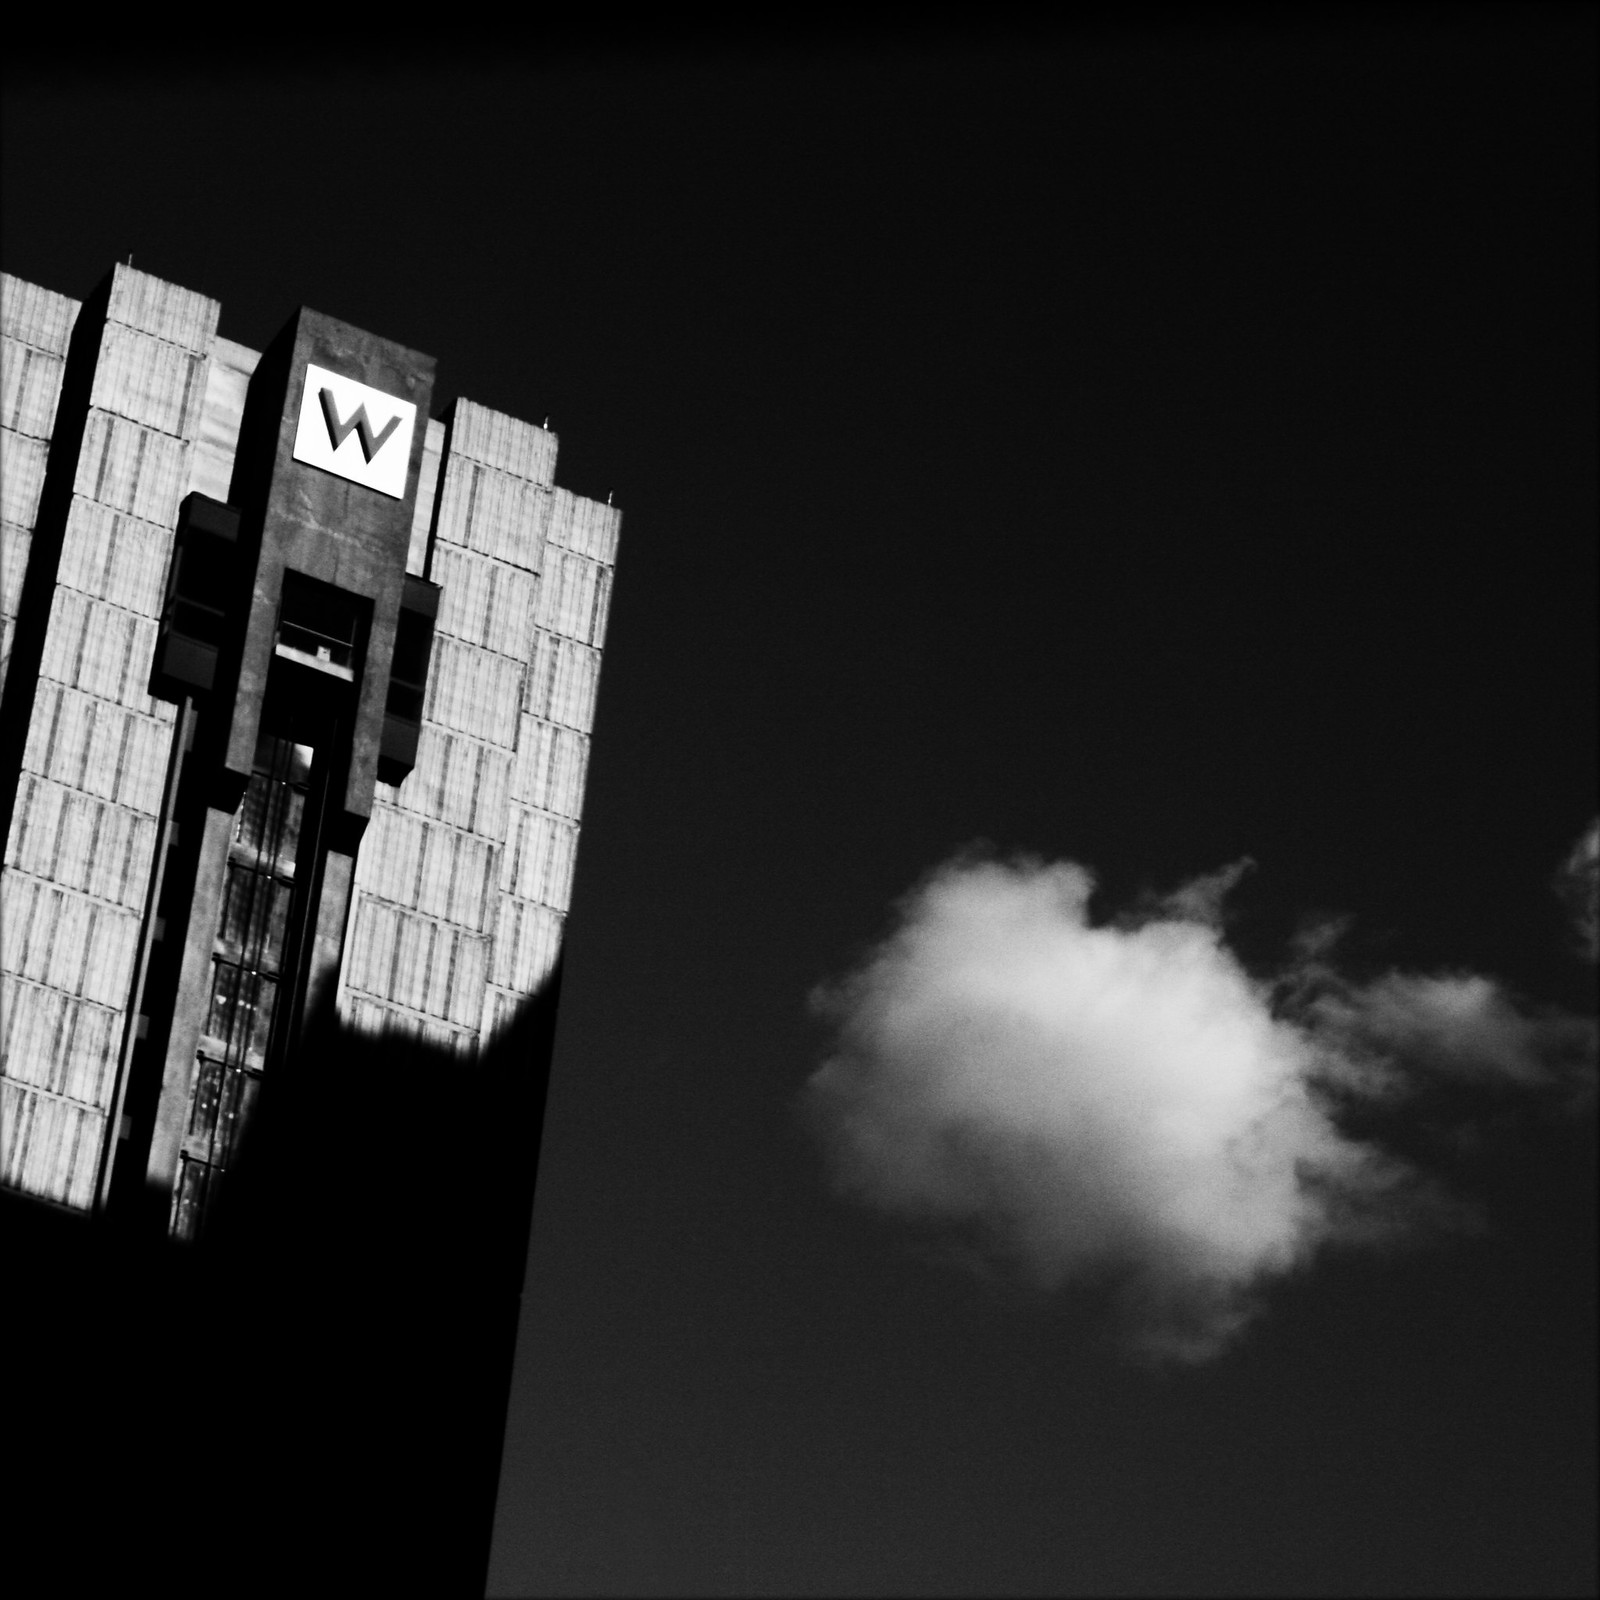 The W Building vs. Cloud, Midtown Atlanta